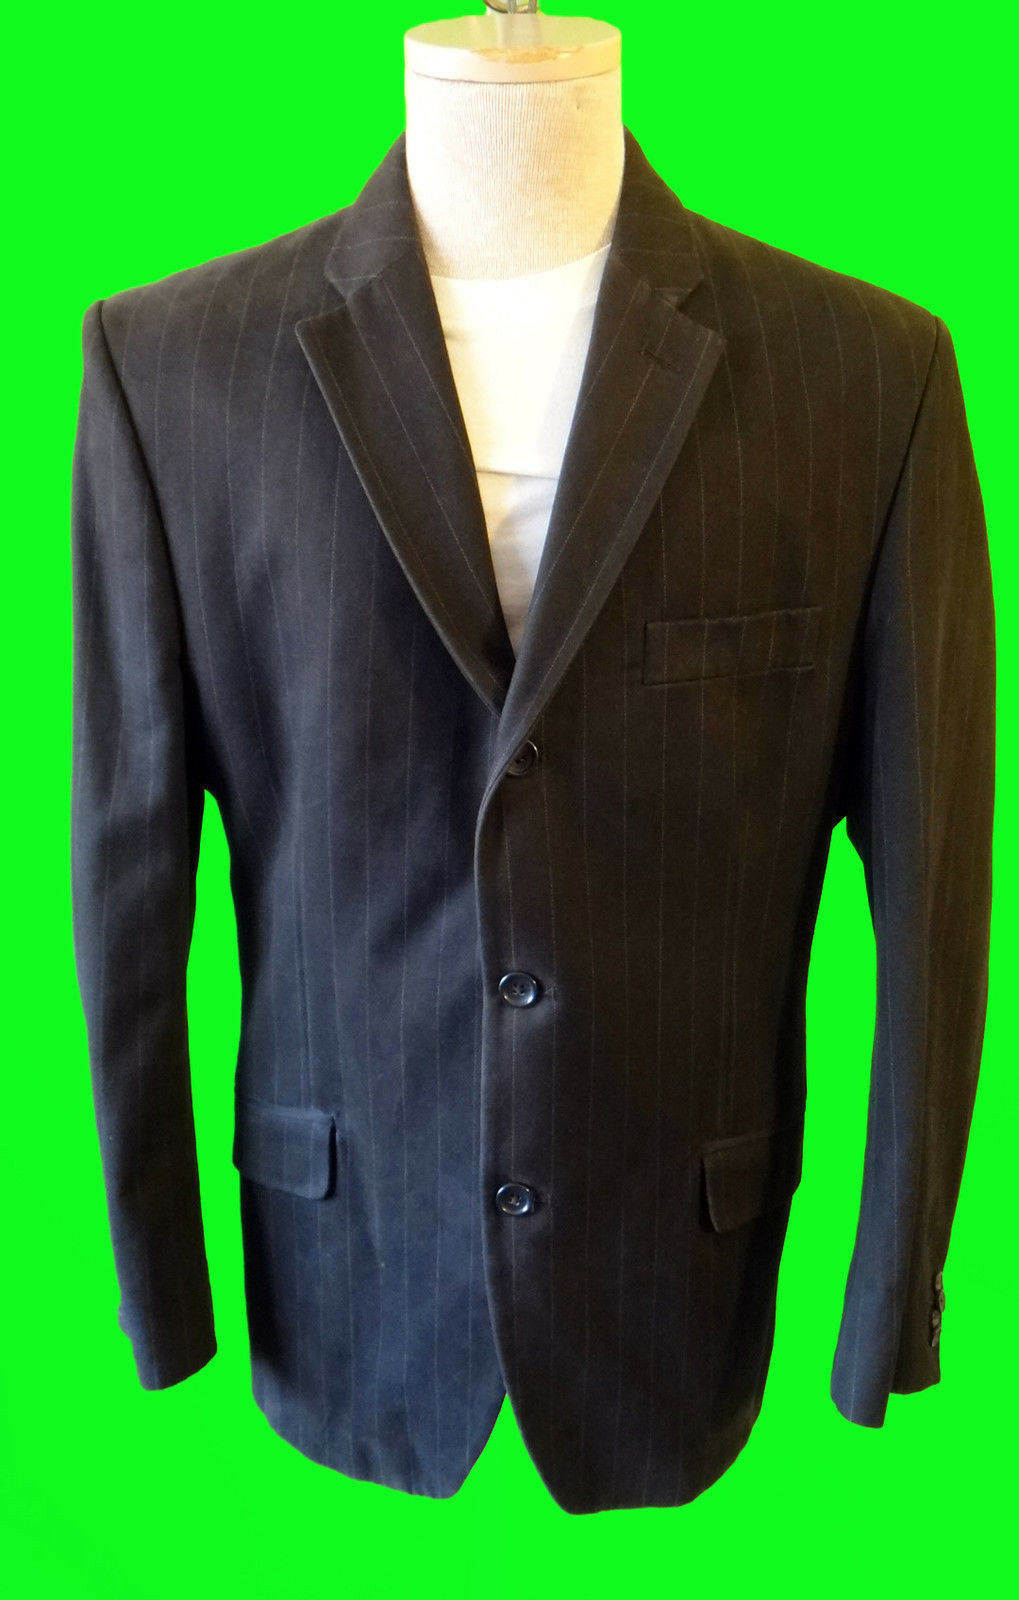 Banana Republic Chocolate Braun pinstripe  Cotton sport blazer 44s casual 3 butt